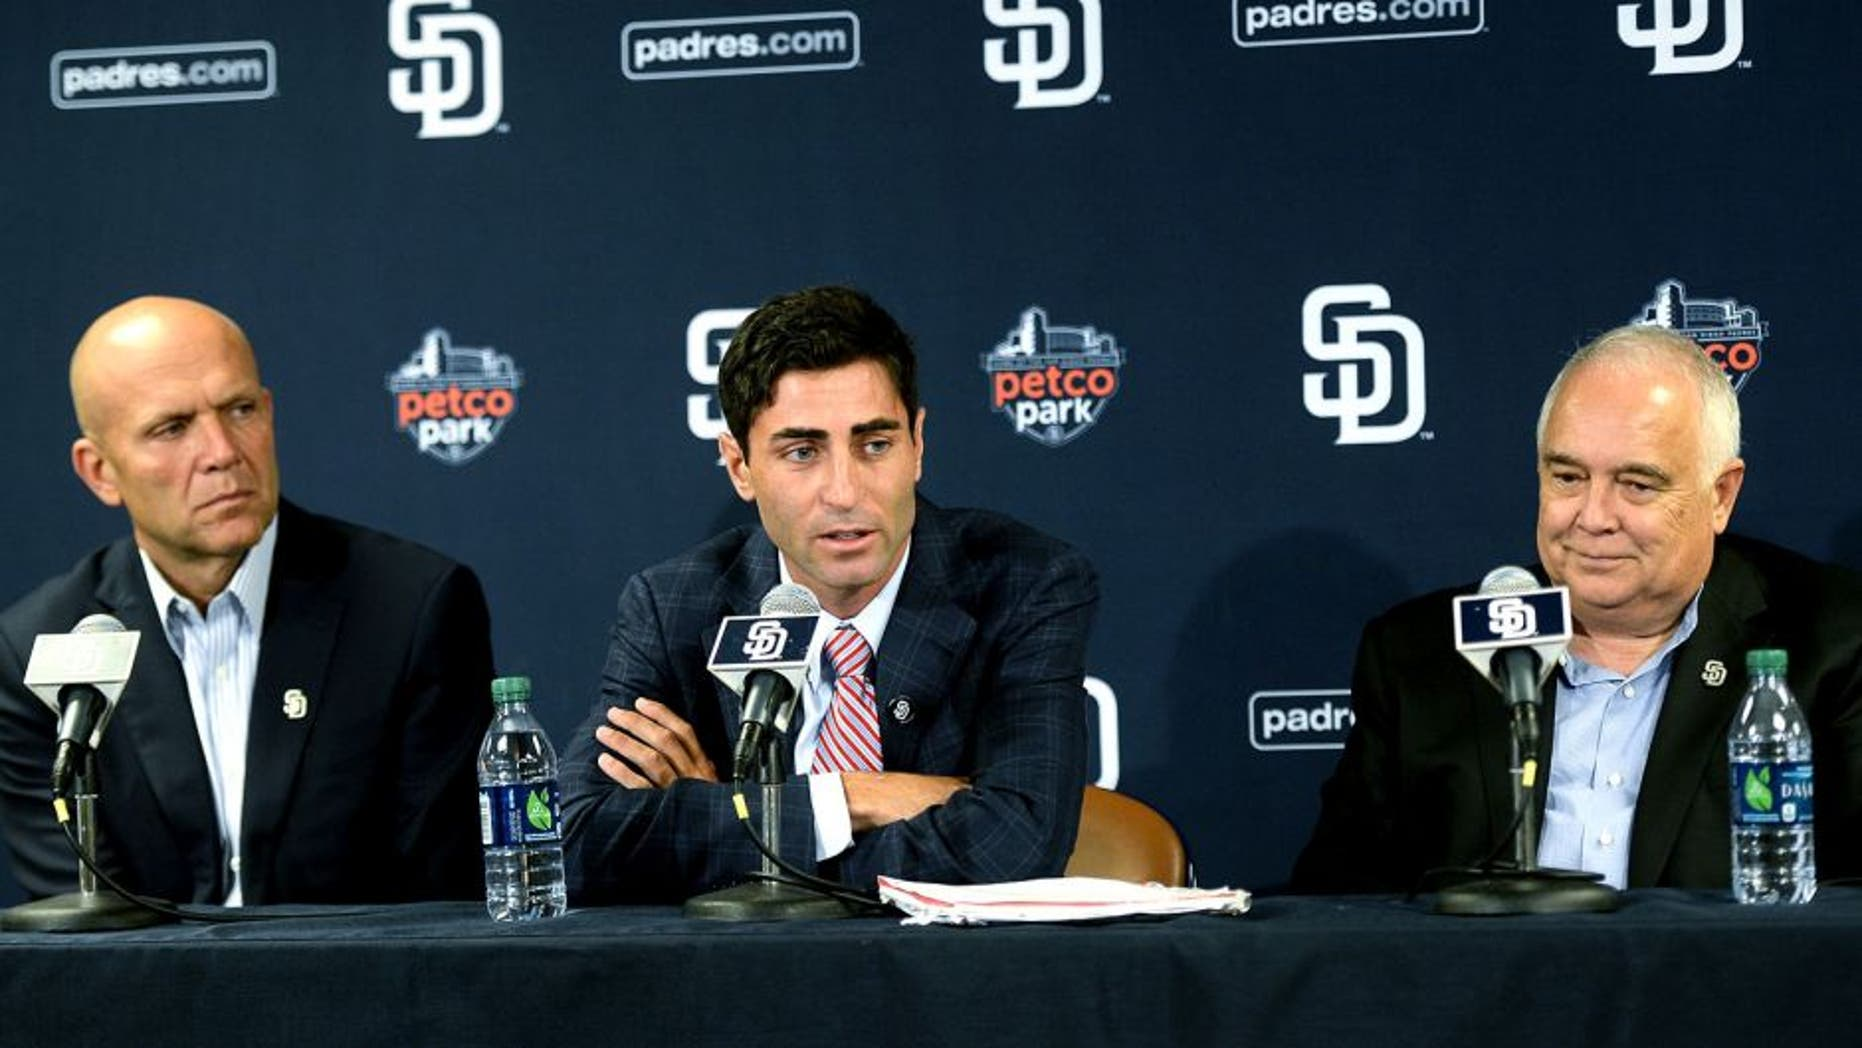 SAN DIEGO, CA - AUGUST 6: President & Chief Executive Officer Mike Dee and Executive Chairman Ron Fowler of the San Diego Padres listen as A.J. Preller speaks with the media as he is named the new General Manager of the San Diego Padres at a press conference at Petco Park on August 6, 2014 in San Diego, California. (Photo by Andy Hayt/San Diego Padres/Getty Images) *** LOCAL CAPTION *** A.J. Preller;Mike Dee;Ron Fowler